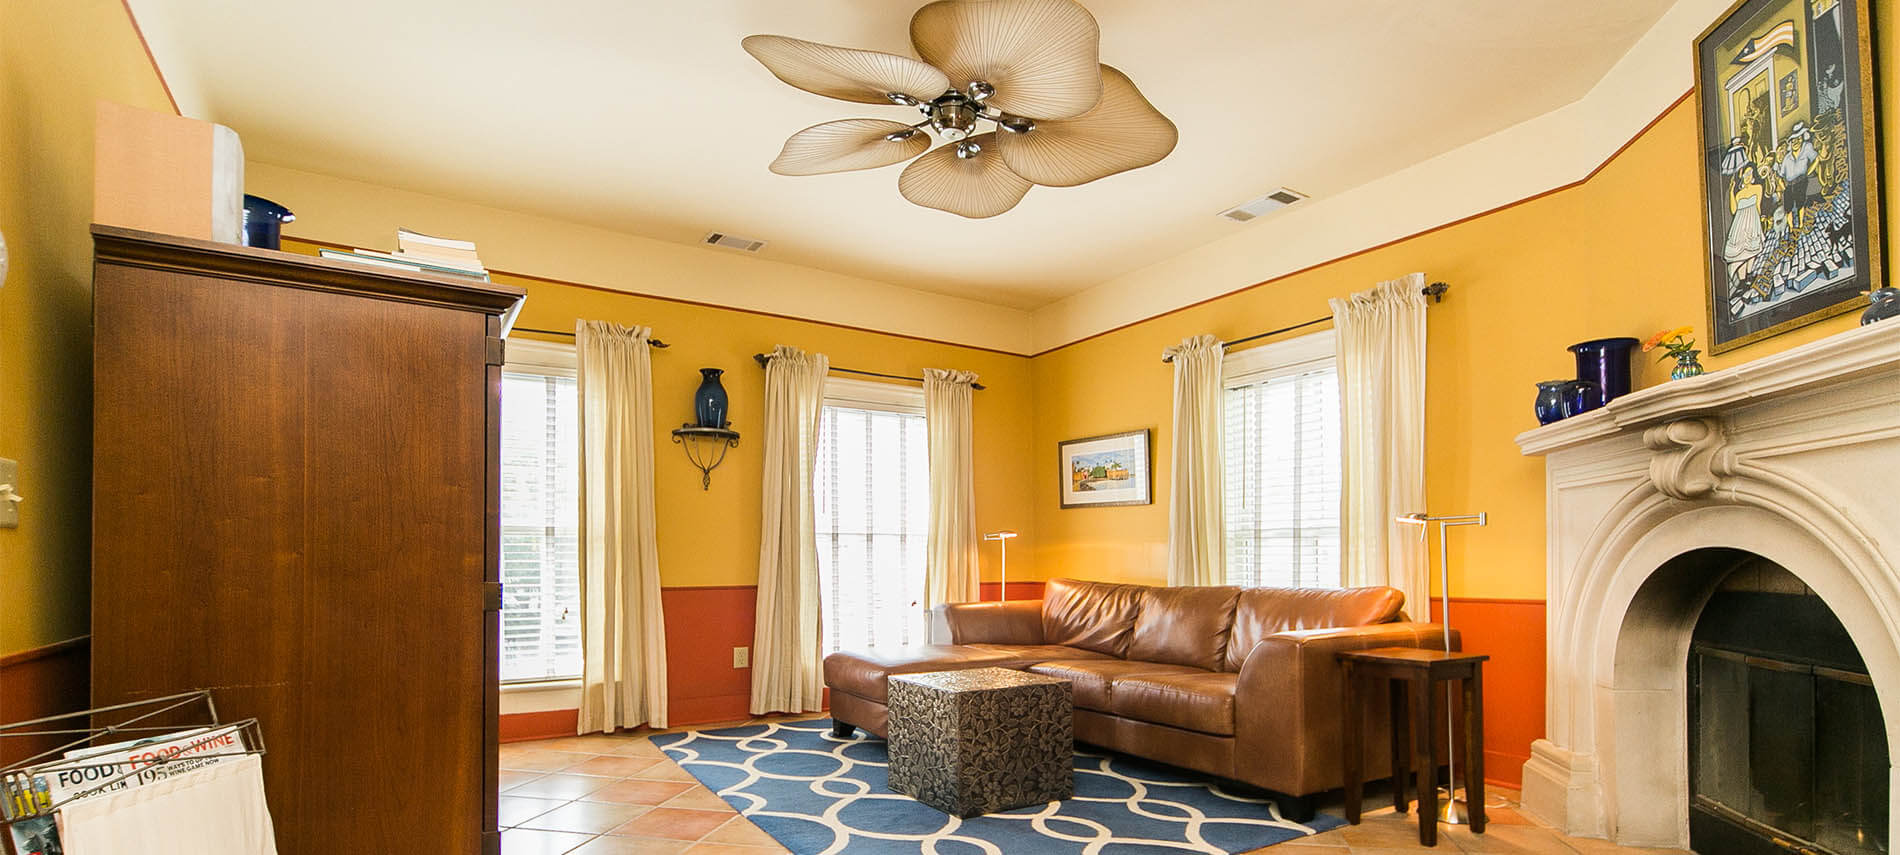 Brown leather couch with blue run that had round rings in it and a white stone fireplace and unique fan.